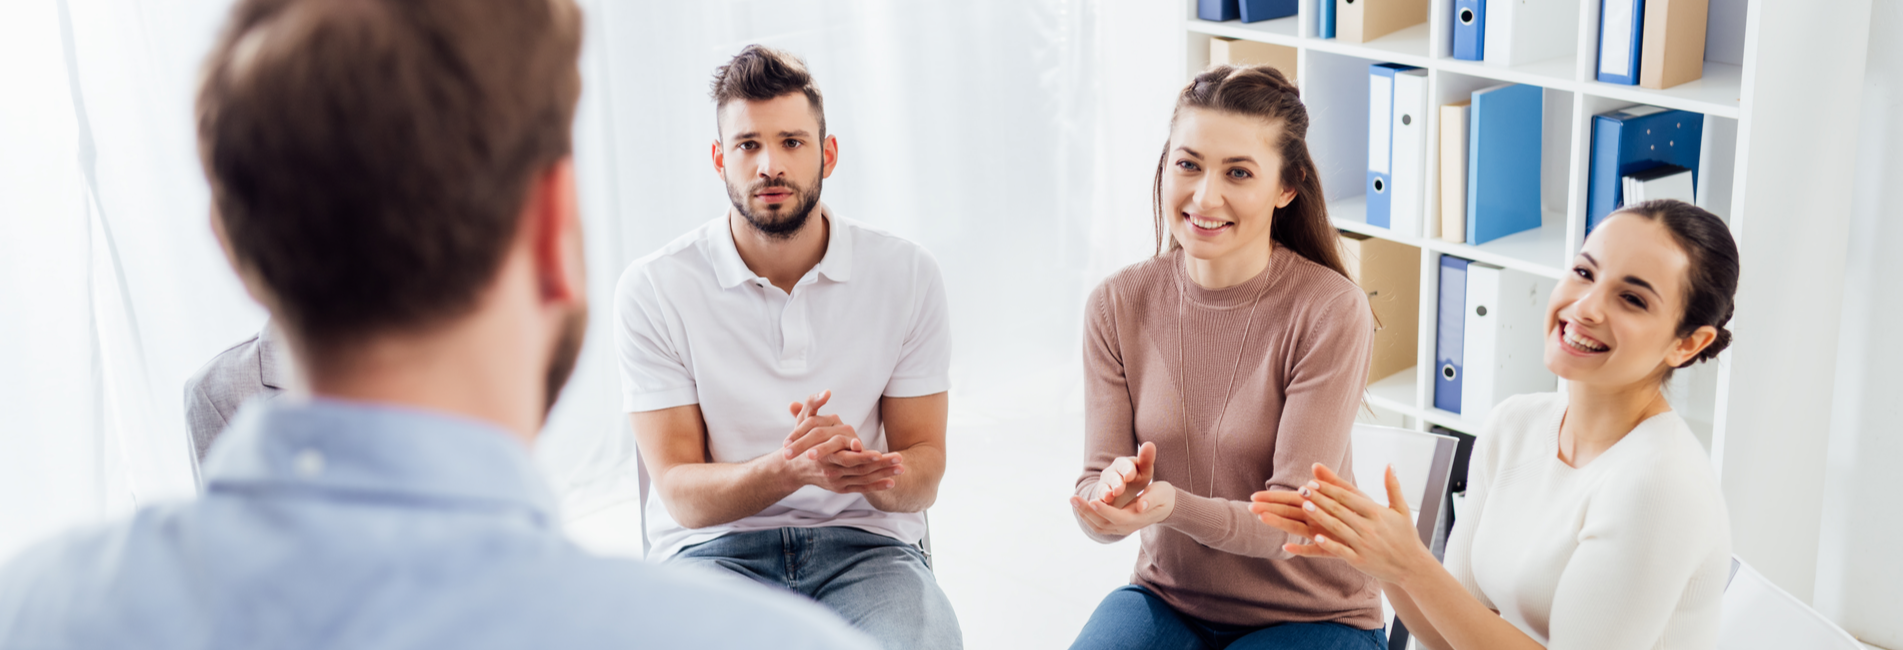 Evidence Based Treatment in California for Addiction - Resurgence - A group of individuals struggling with addiction is discussing evidence based treatment in California in a group therapy session.